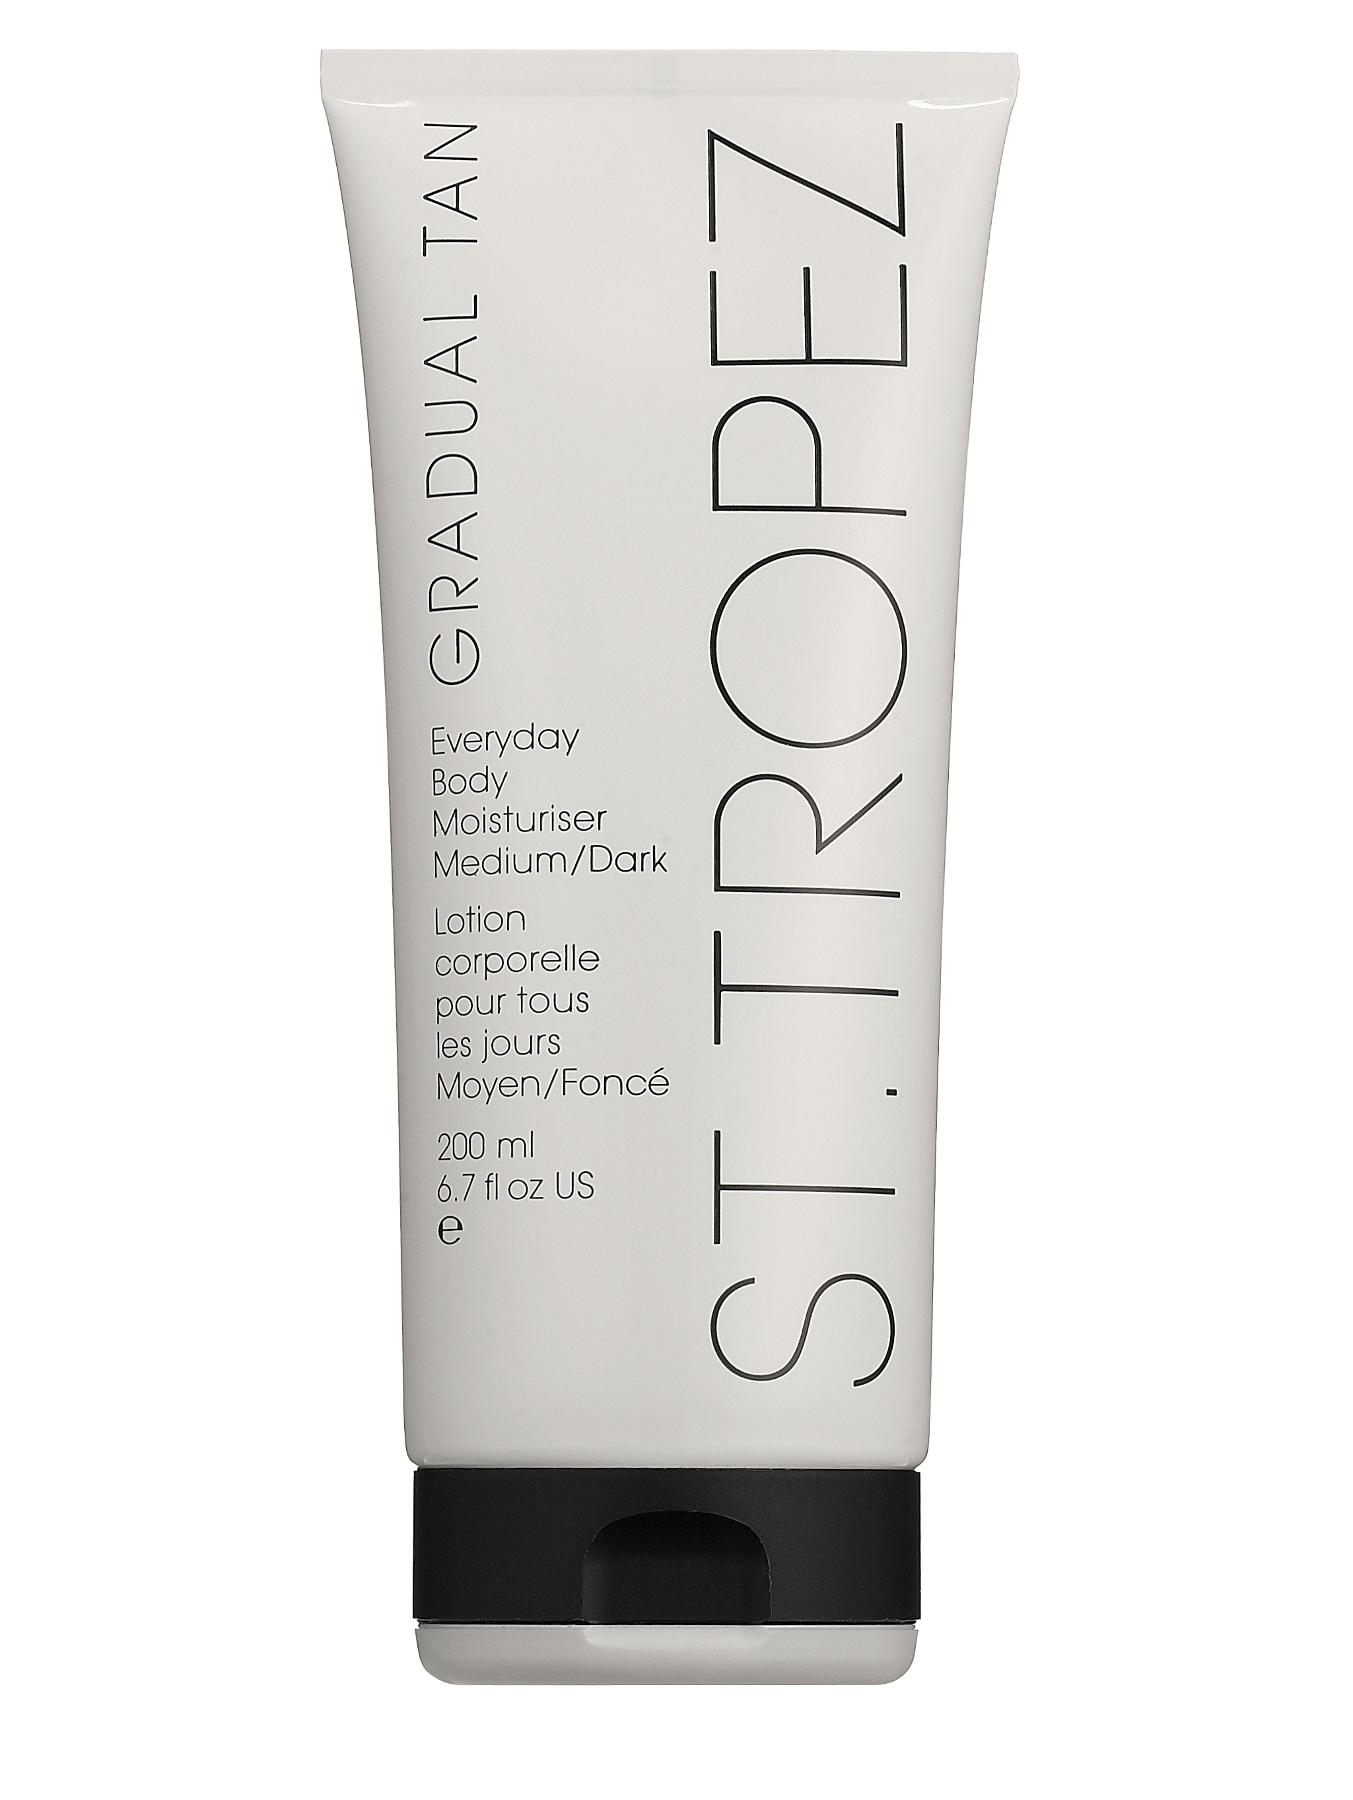 St Tropez Everyday Gradual Tan Body Lotion 200ml - Light/Medium